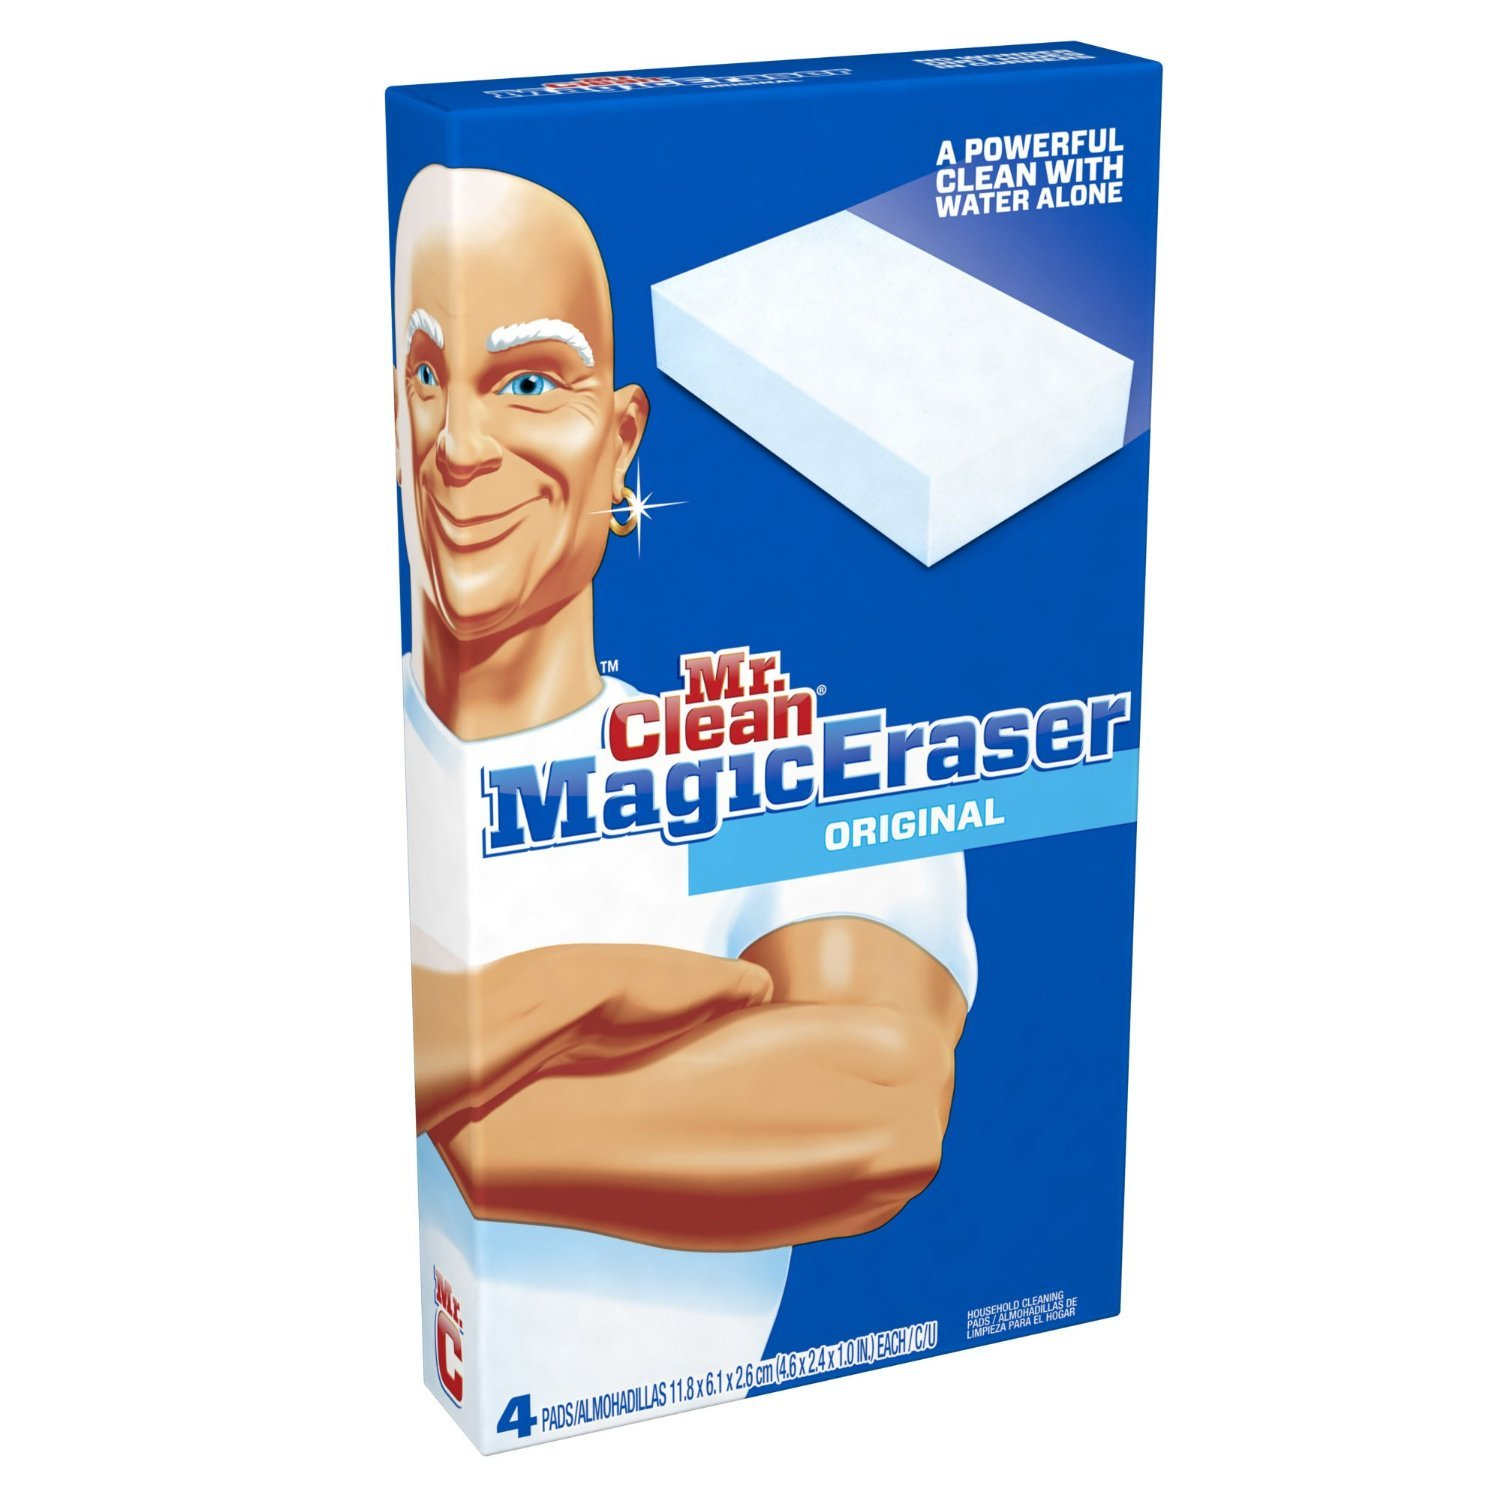 Mr. Clean Magic Eraser, New Value Pack Size- 48 Pads